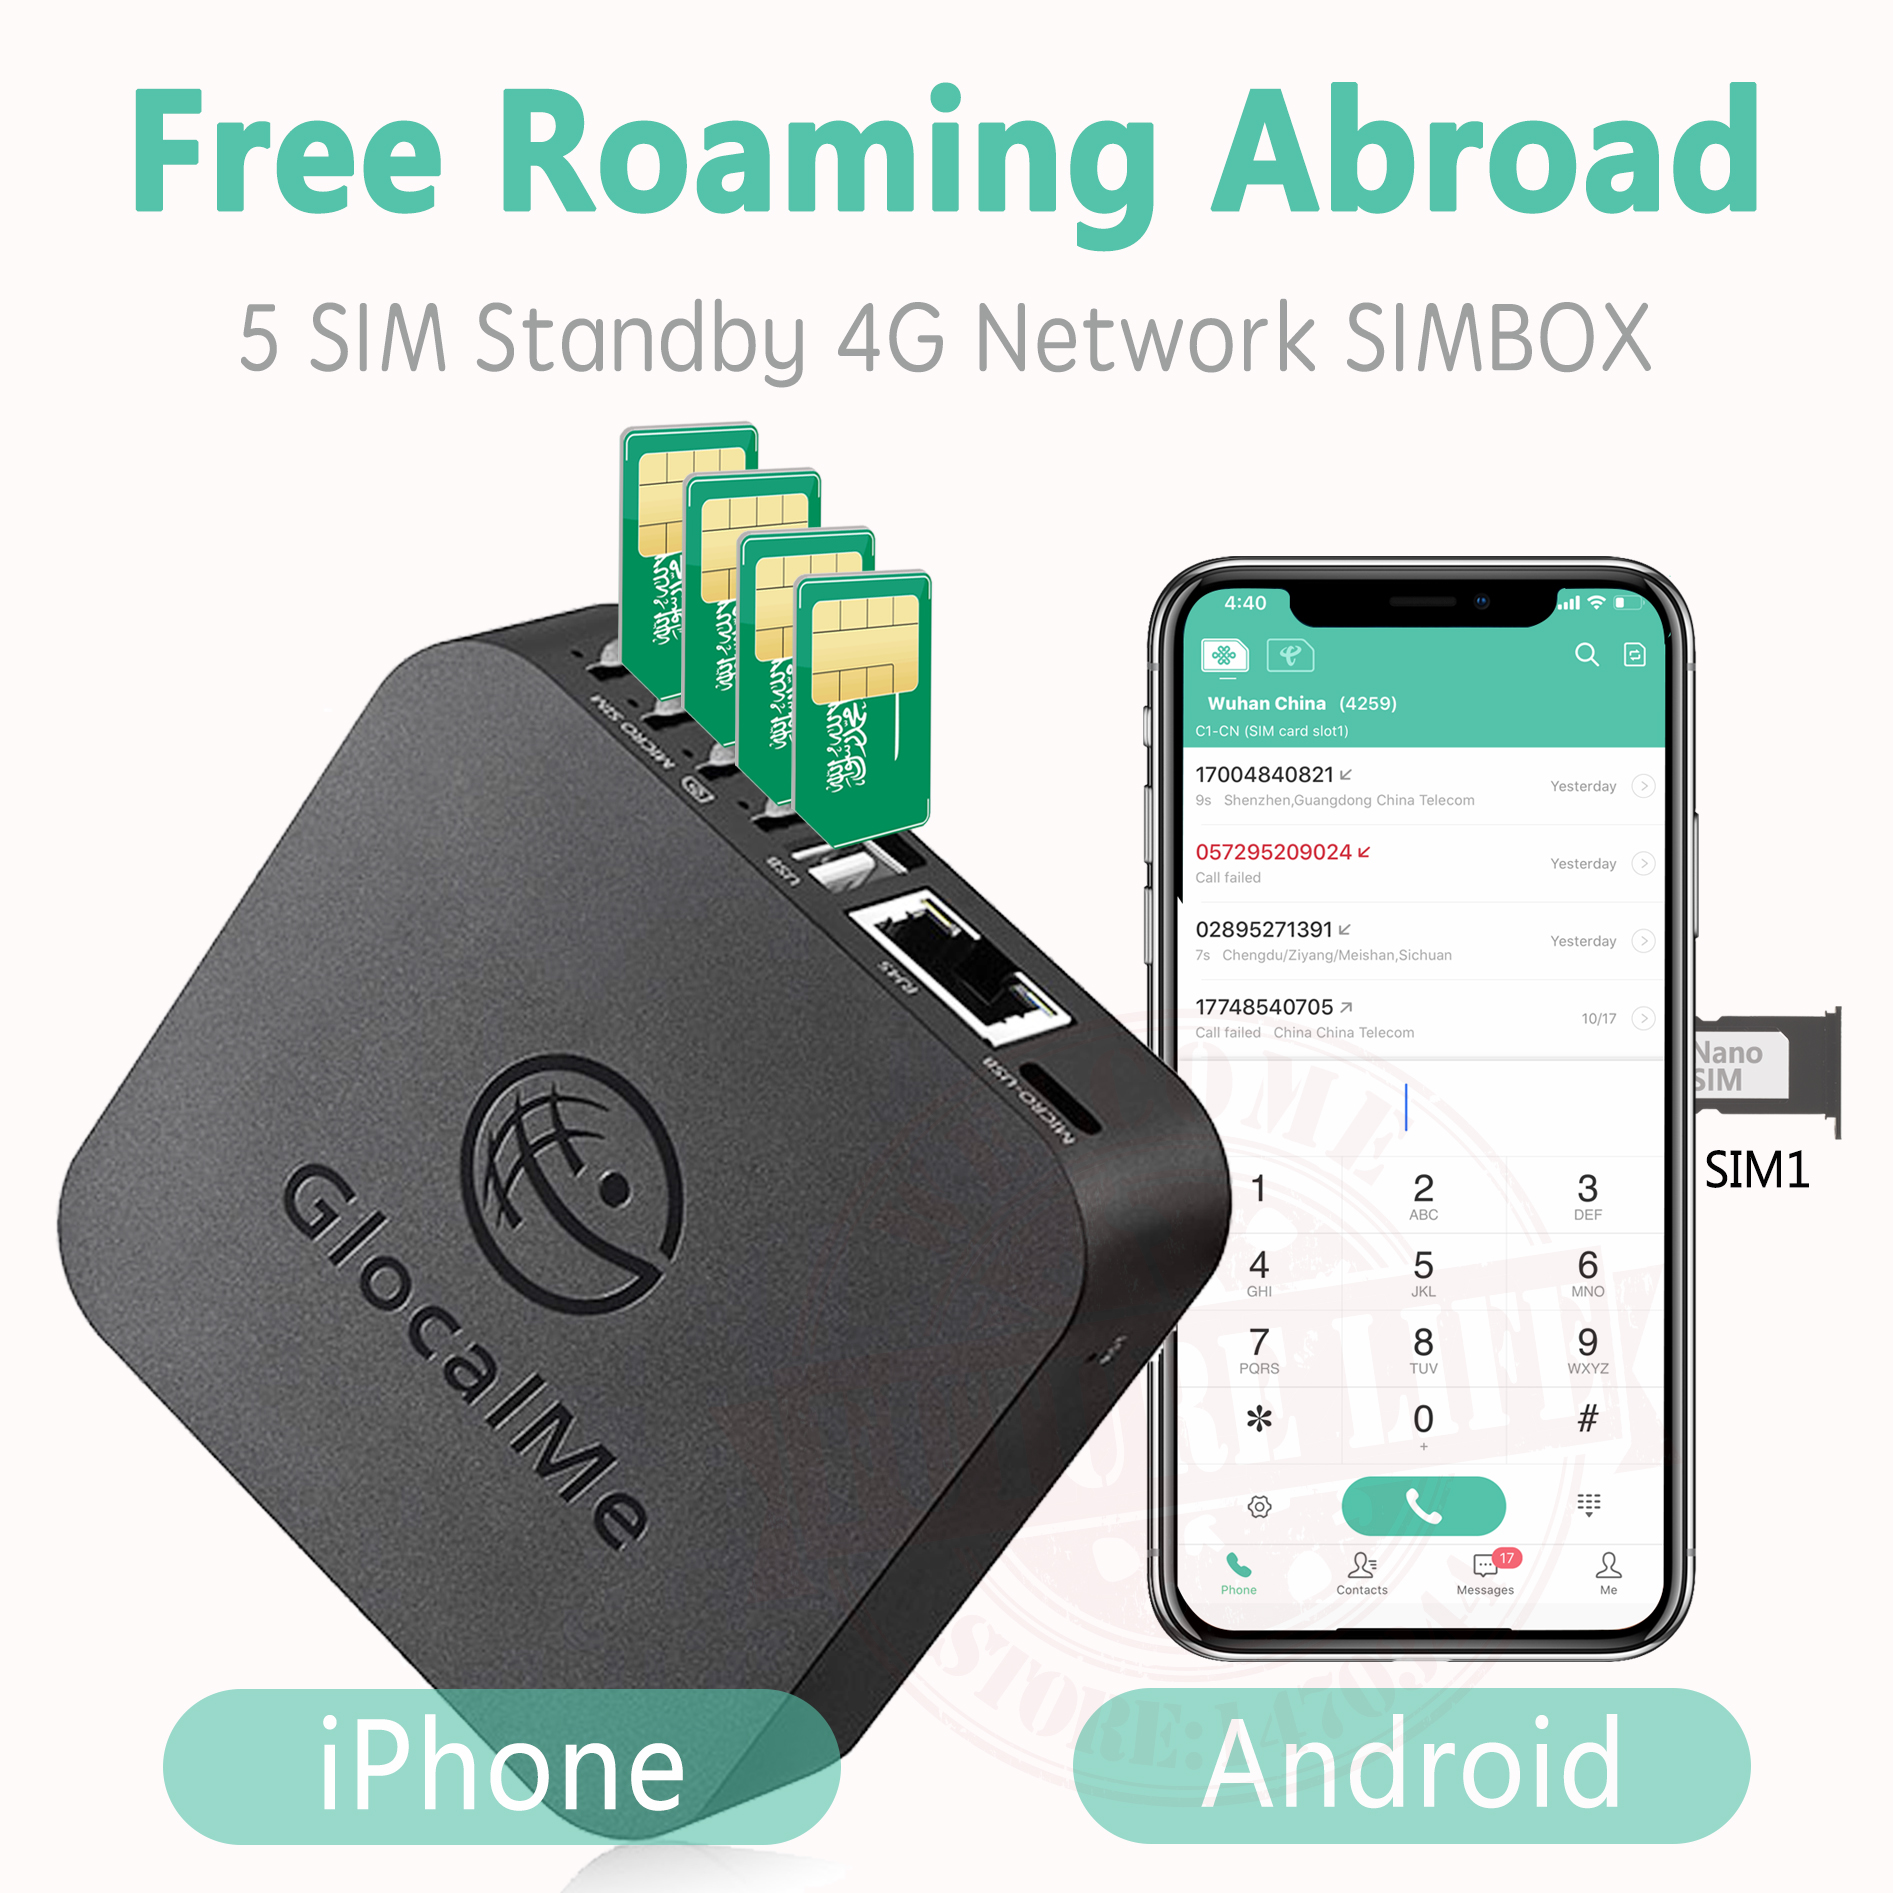 2020 Glocalme 4G SIMBOX Multiple SIM Standby No Roaming abroad for iOS  amp  Android WiFi   Data to Make Call  amp SMS